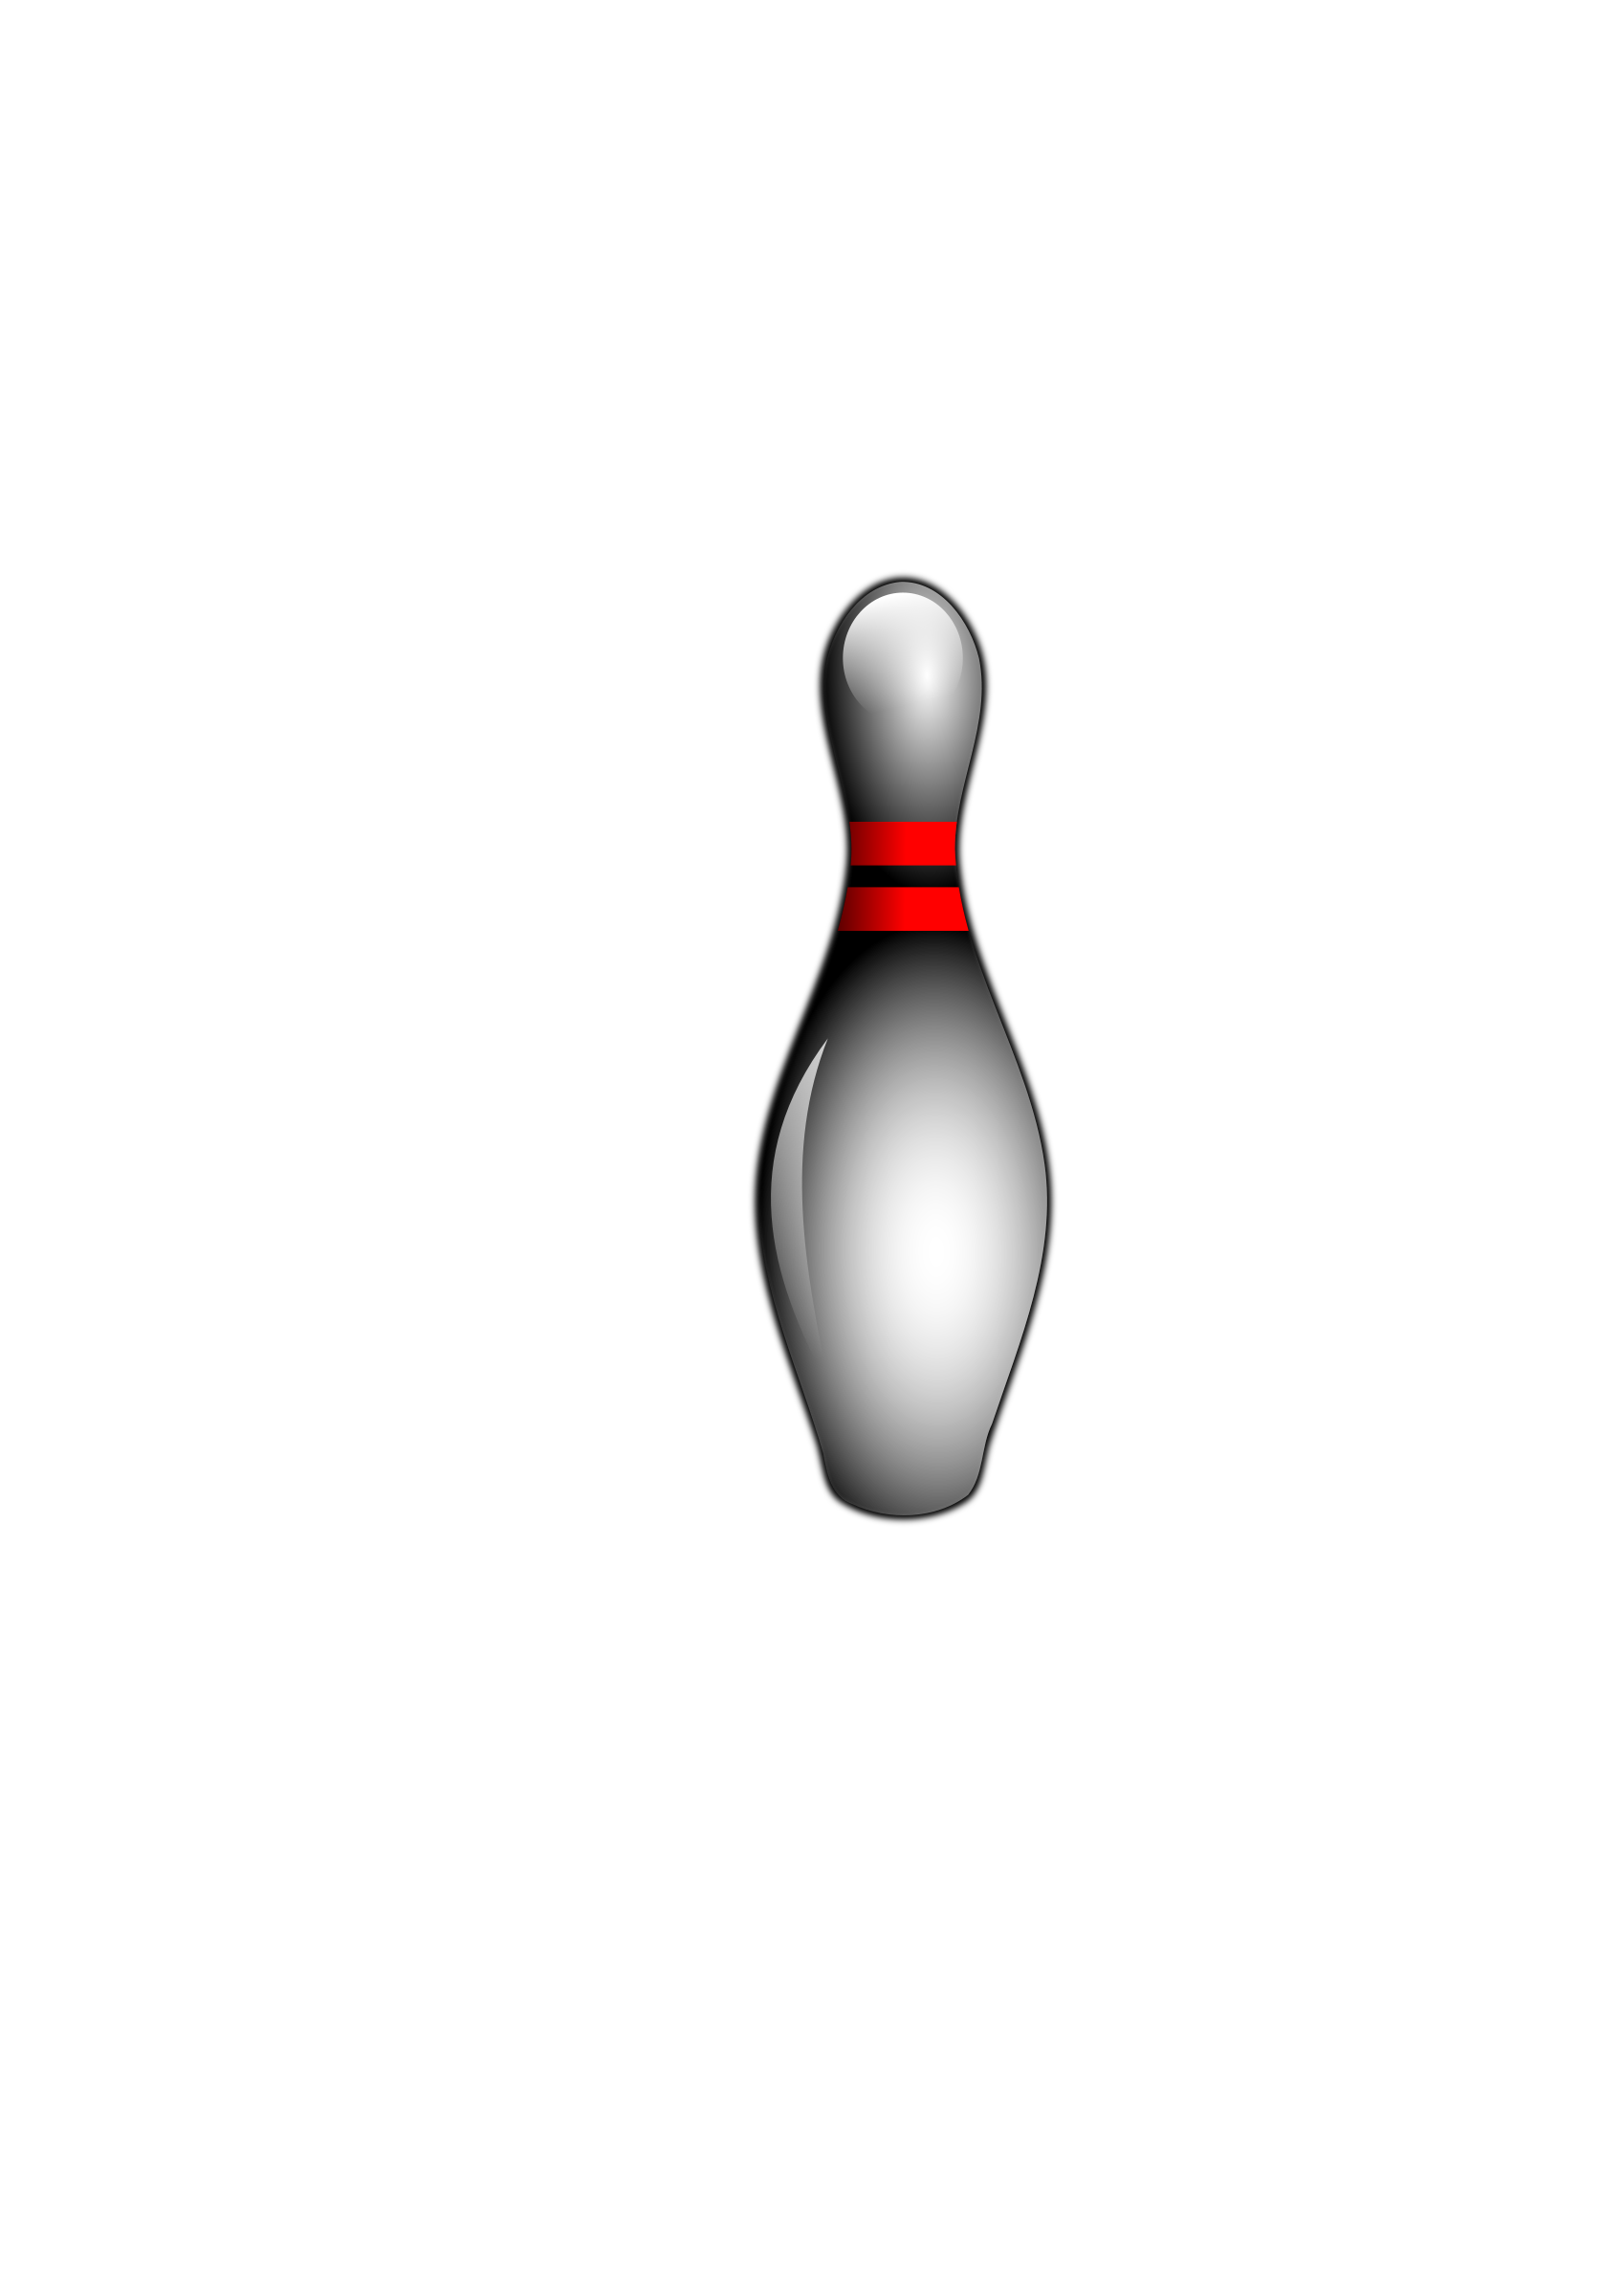 Bowling Pin by nlopez